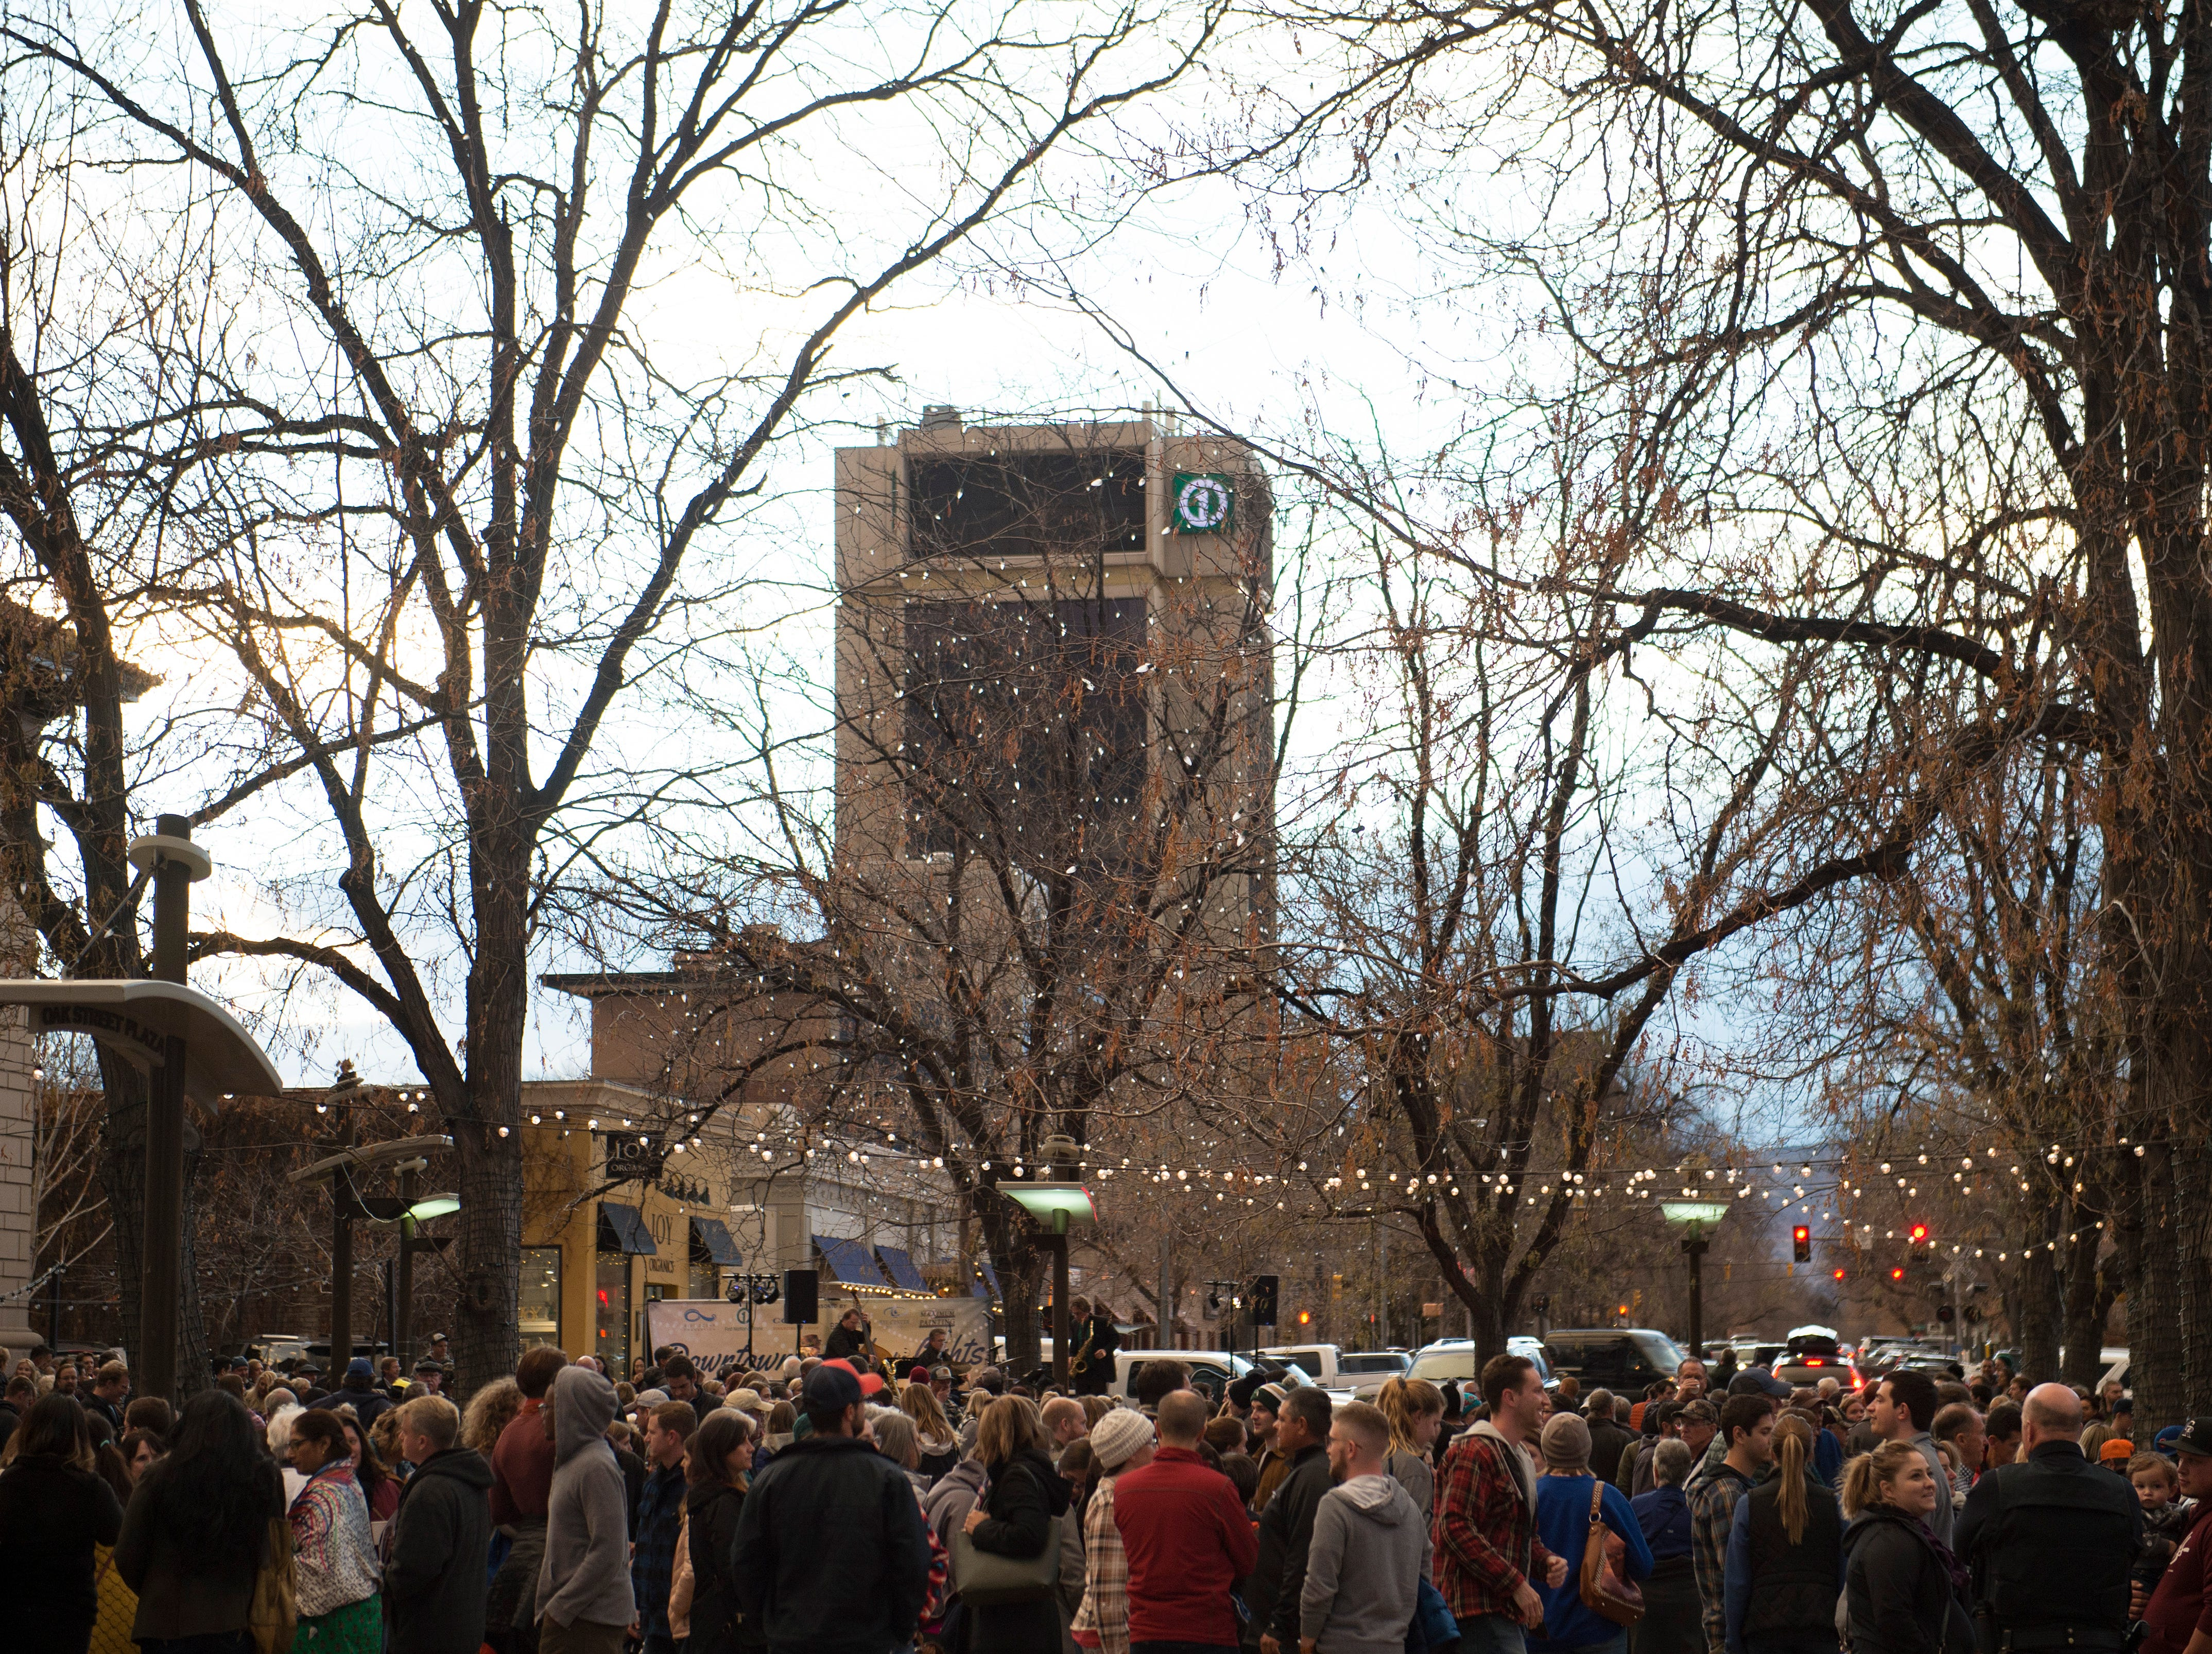 People crowd Oak Street Plaza before the holiday lights turn on in Old Town on Friday, November 2, 2018. The lights will illuminate Old Town until Feb. 14.